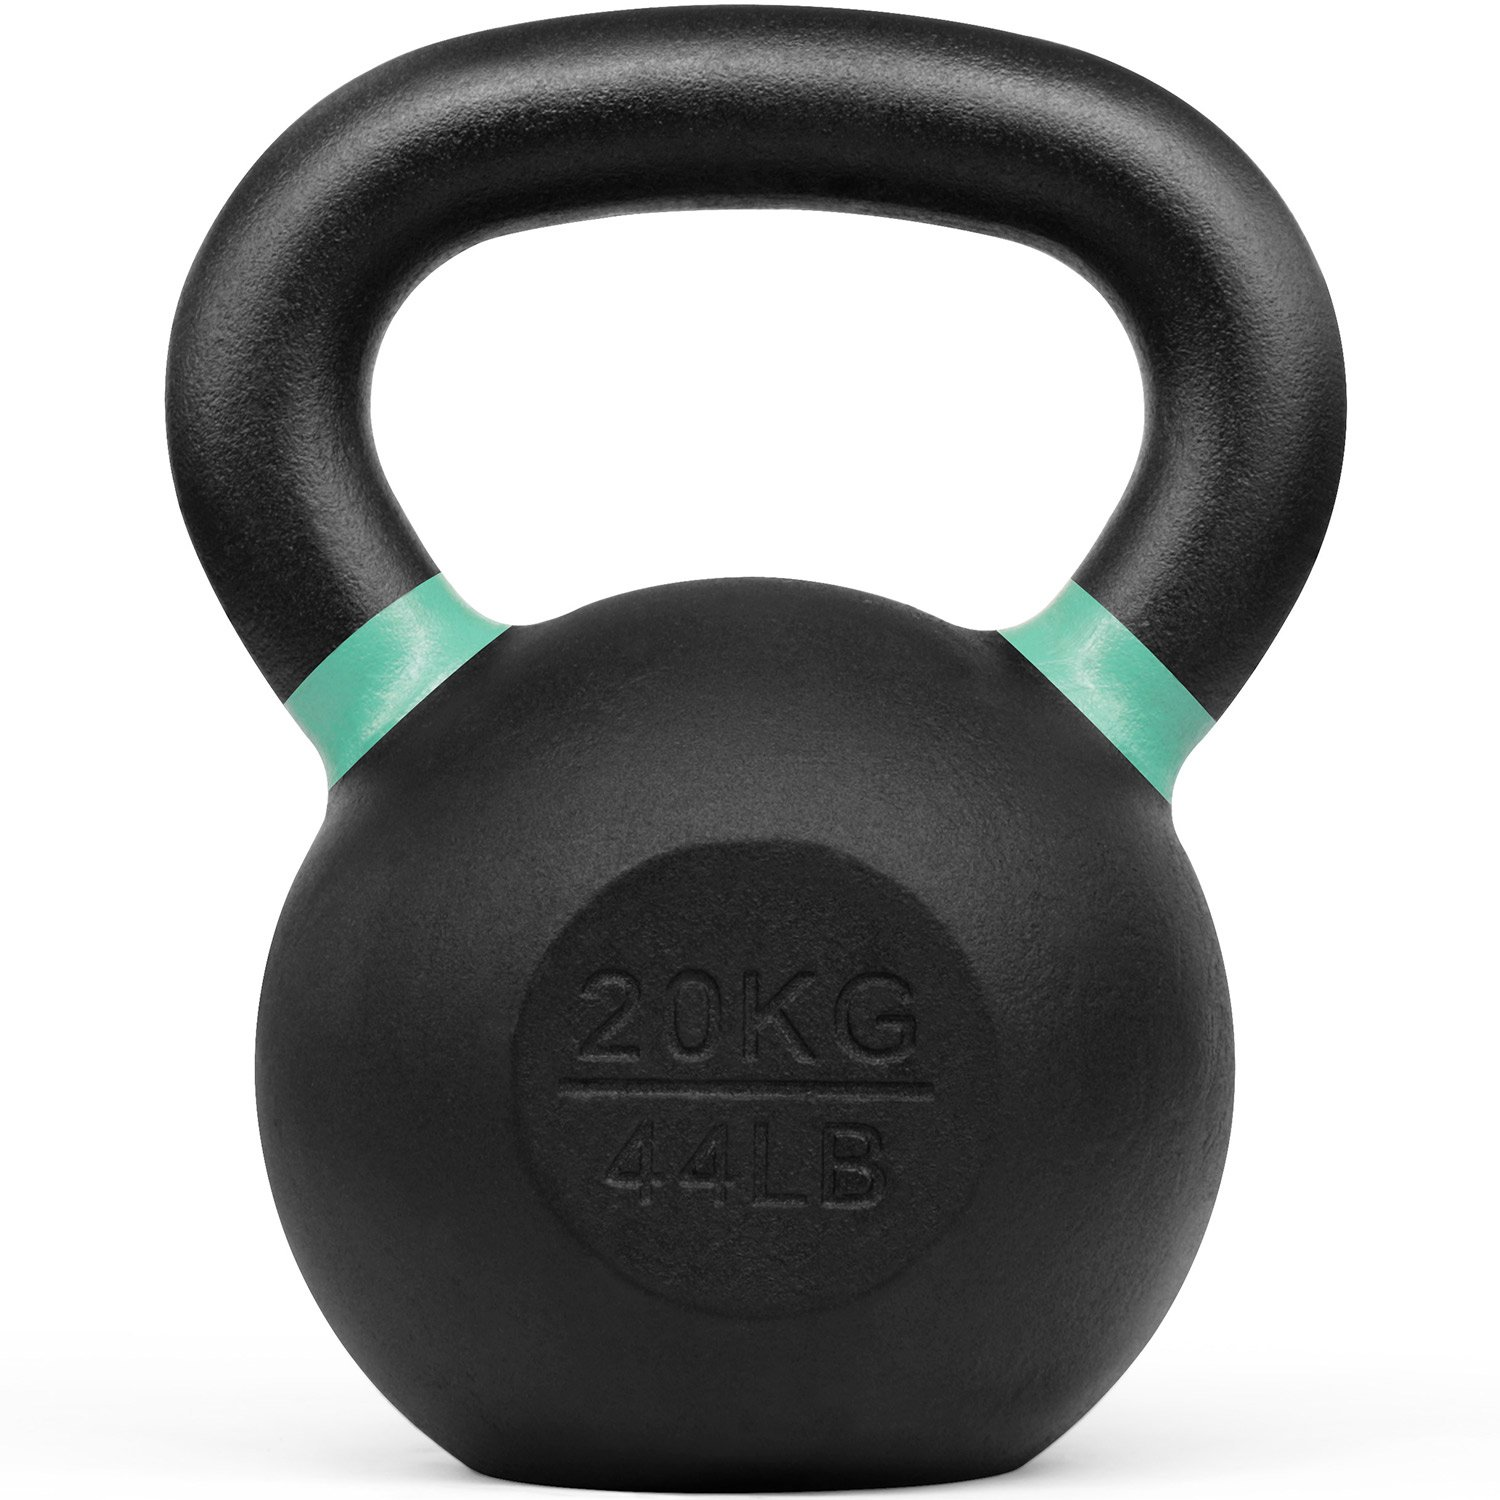 Yes4All Powder Coated Kettlebell Weights with Wide Handles & Flat Bottoms – 20kg/44lbs Cast Iron Kettlebells for Strength, Conditioning & Cross-Training